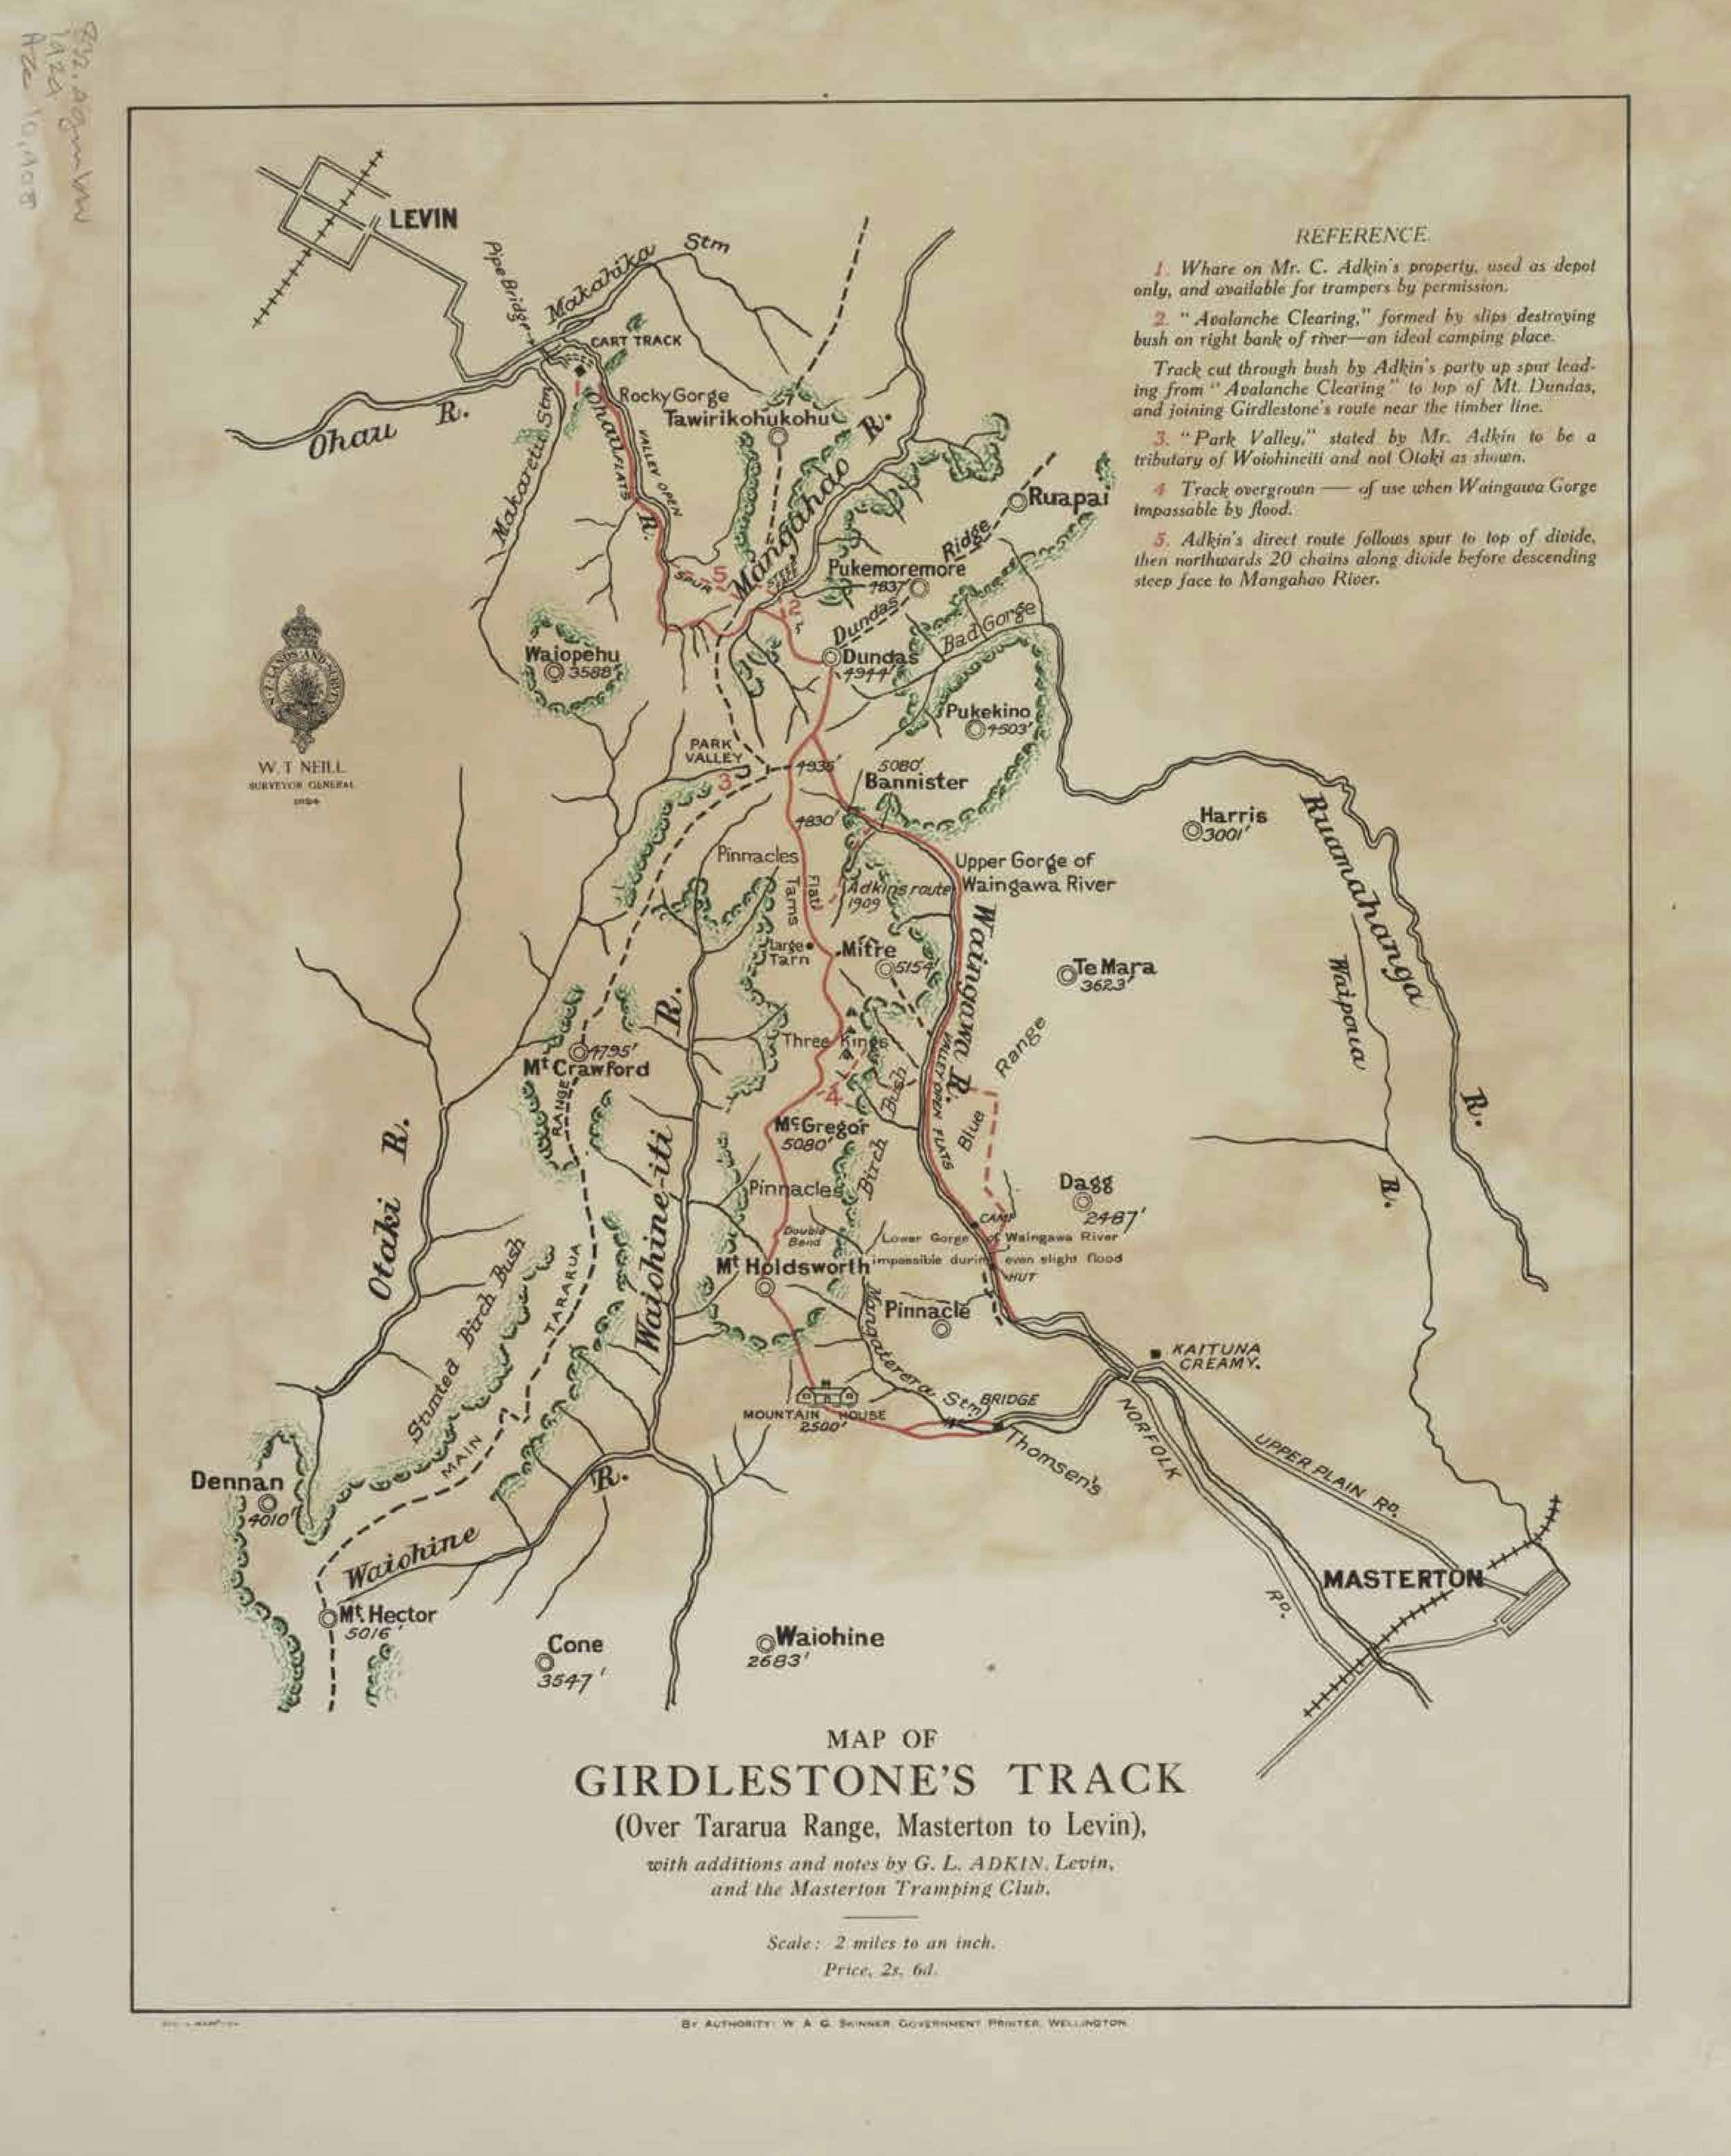 Map of Girdlestone's Track